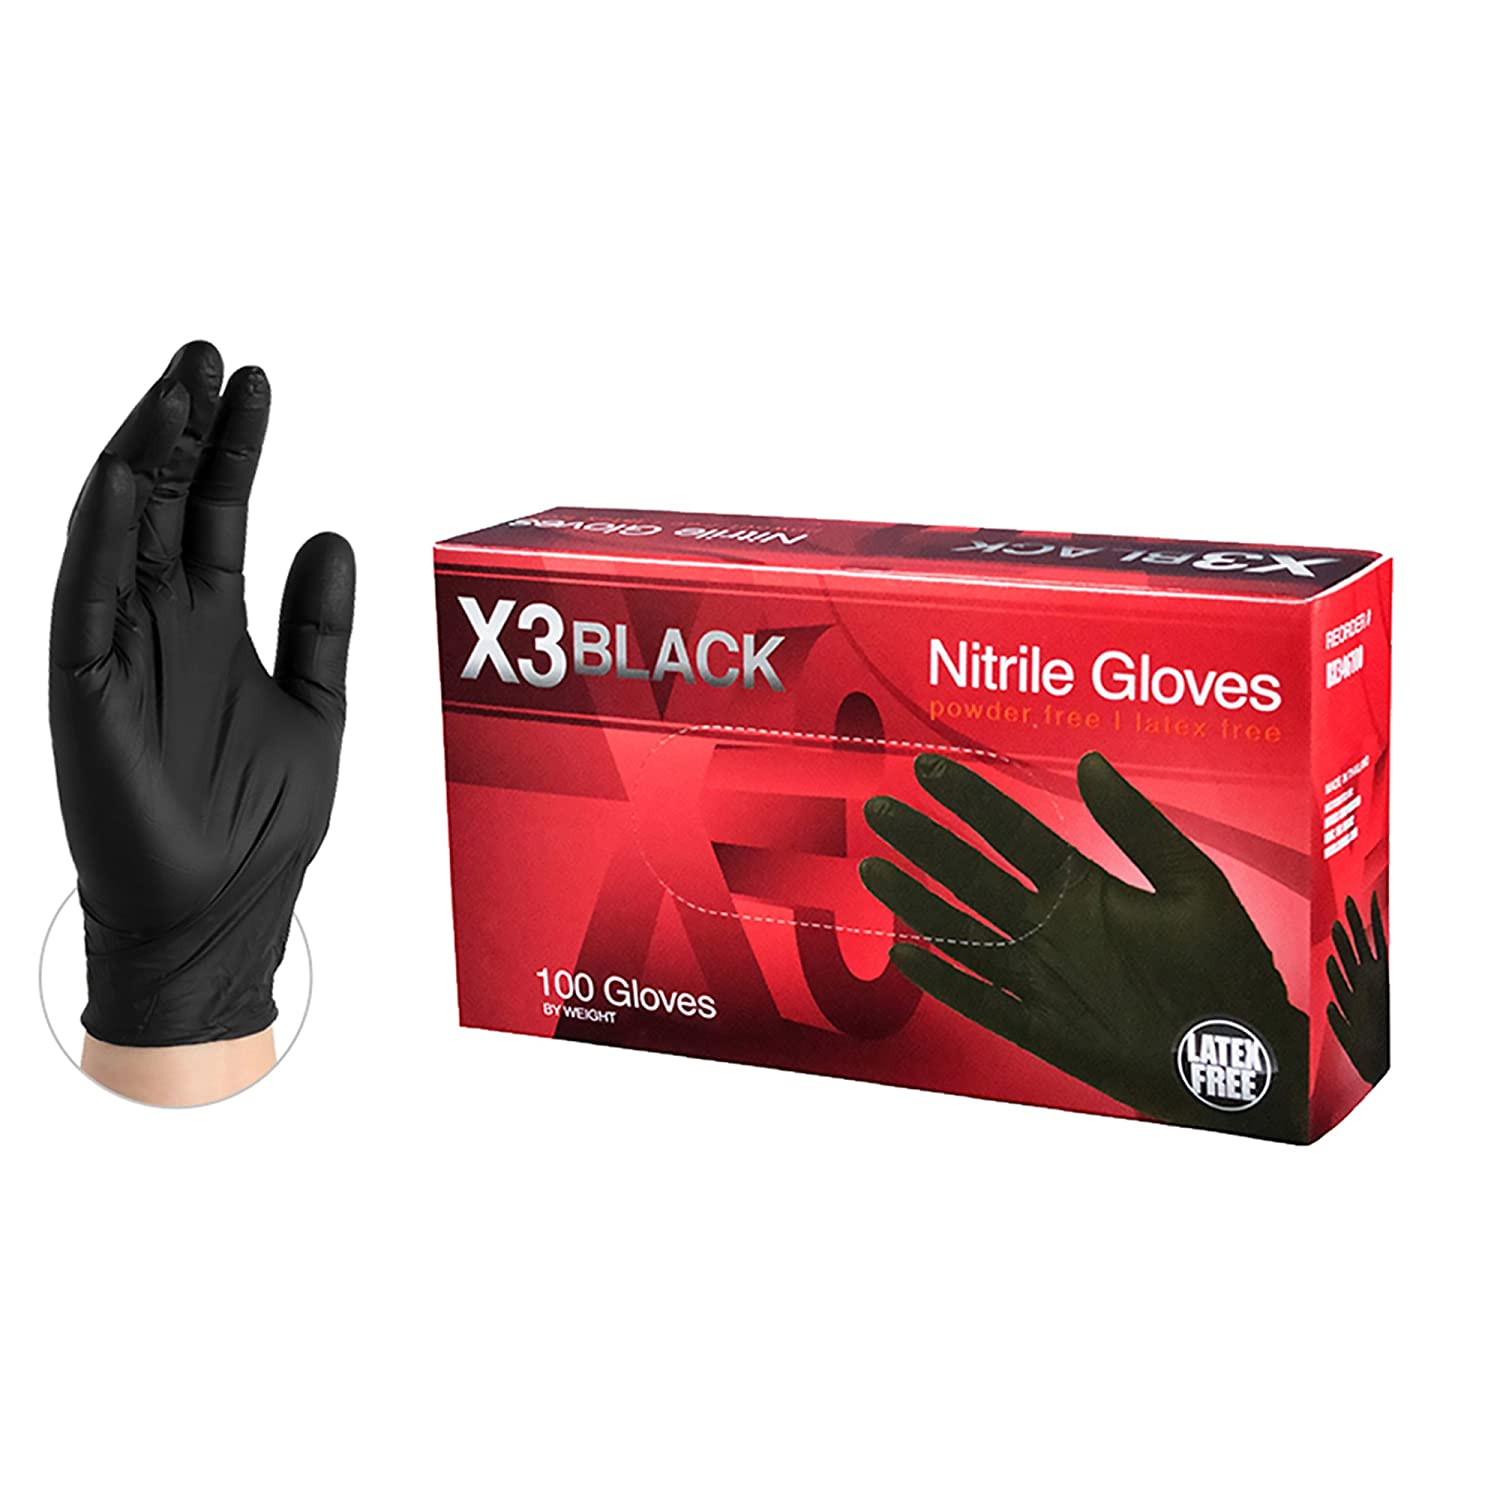 B0112VMC3I Ammex X3 Industrial Black Nitrile Gloves - 3 mil, Latex Free, Powder Free, Textured, Disposable, Medium, BX344100-BX, Box of 100 71WA30VKD4L